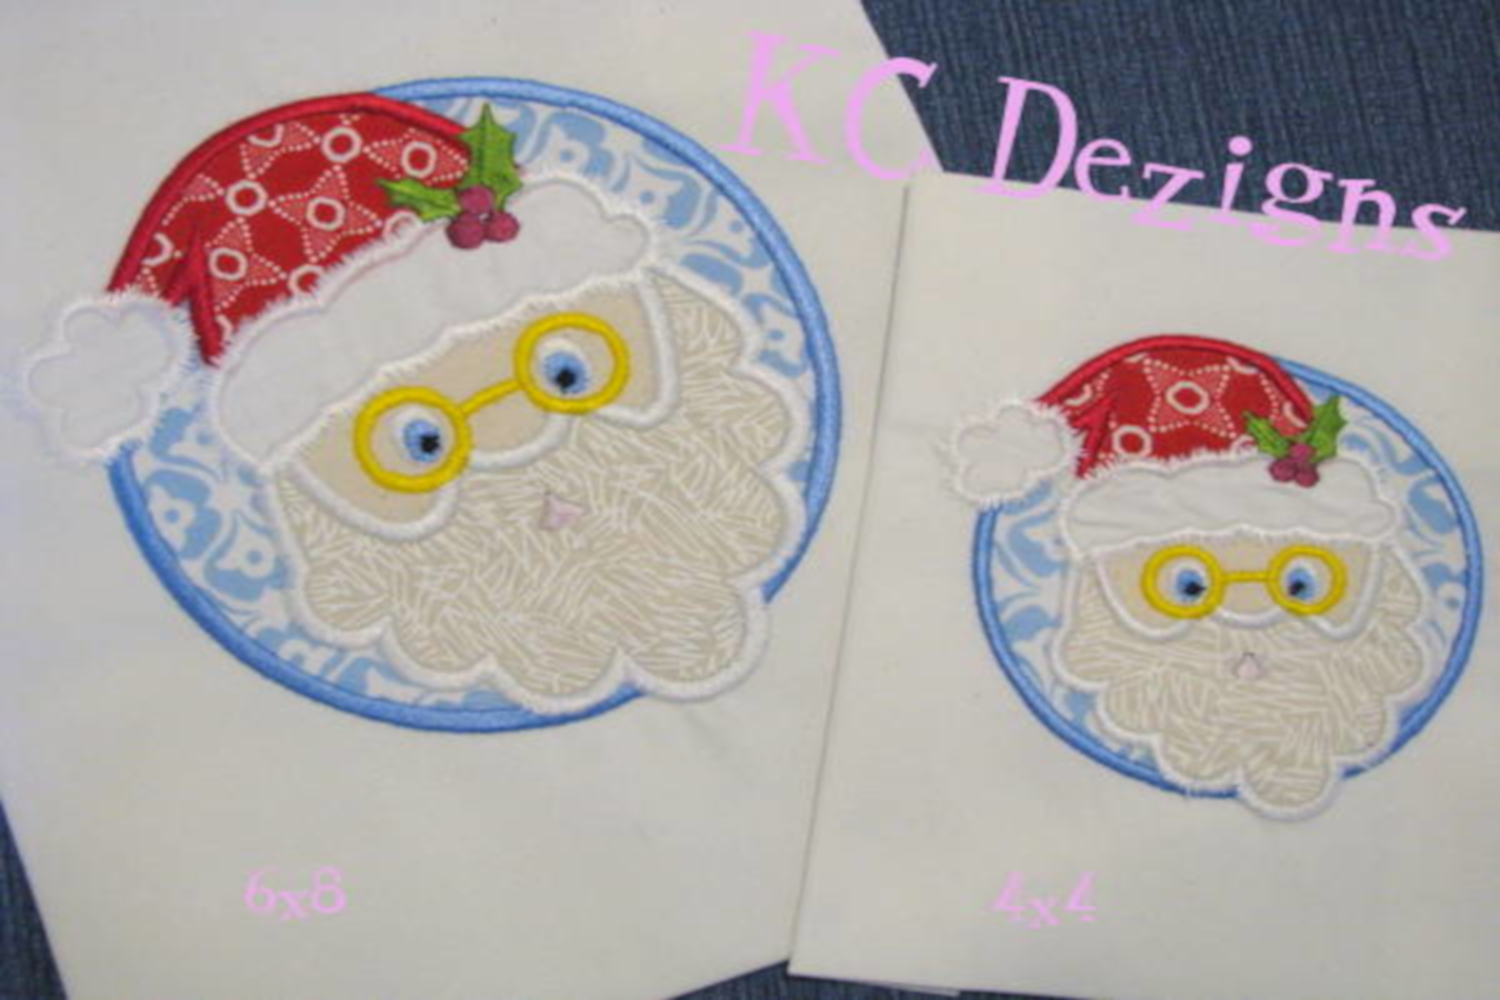 Santa Circle Machine Applique Embroidery Design example image 1